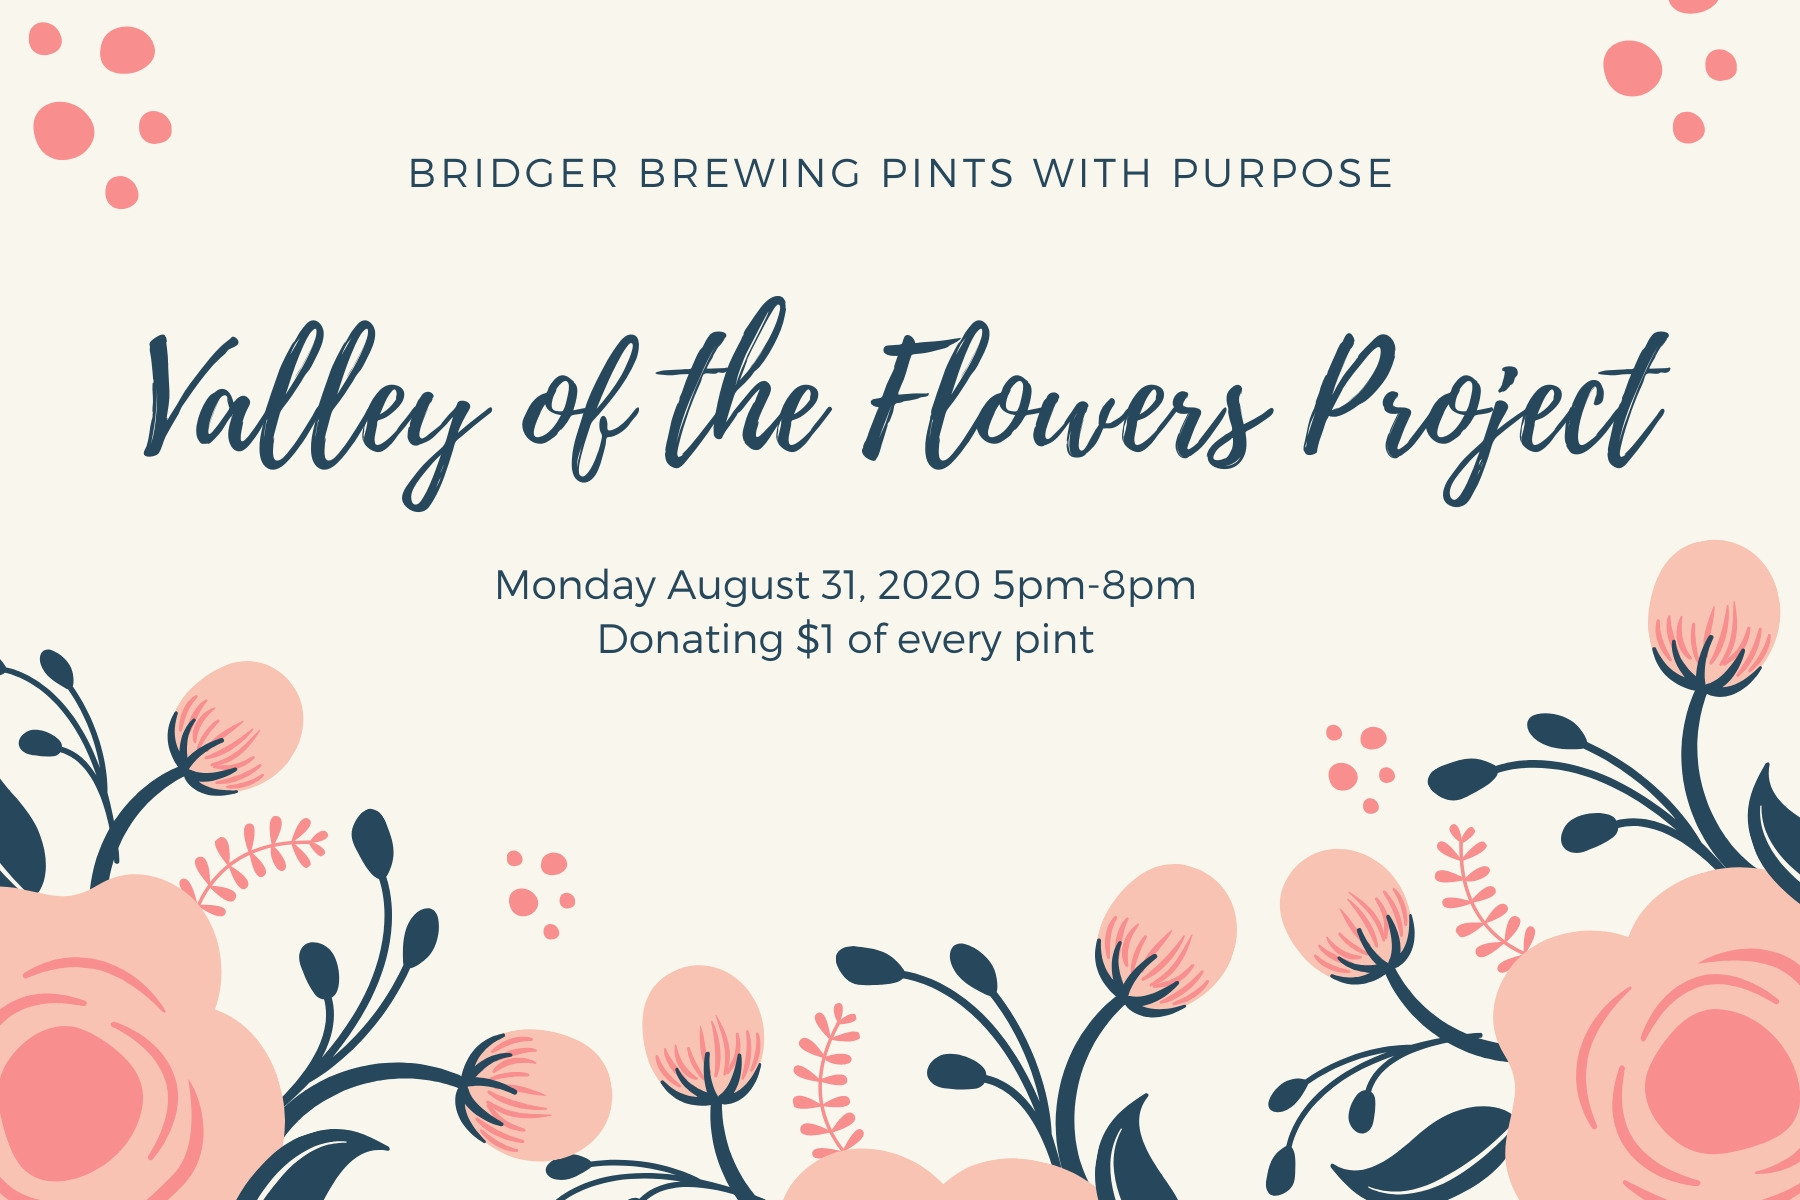 Pints with Purpose :: Valley of the Flowers Project